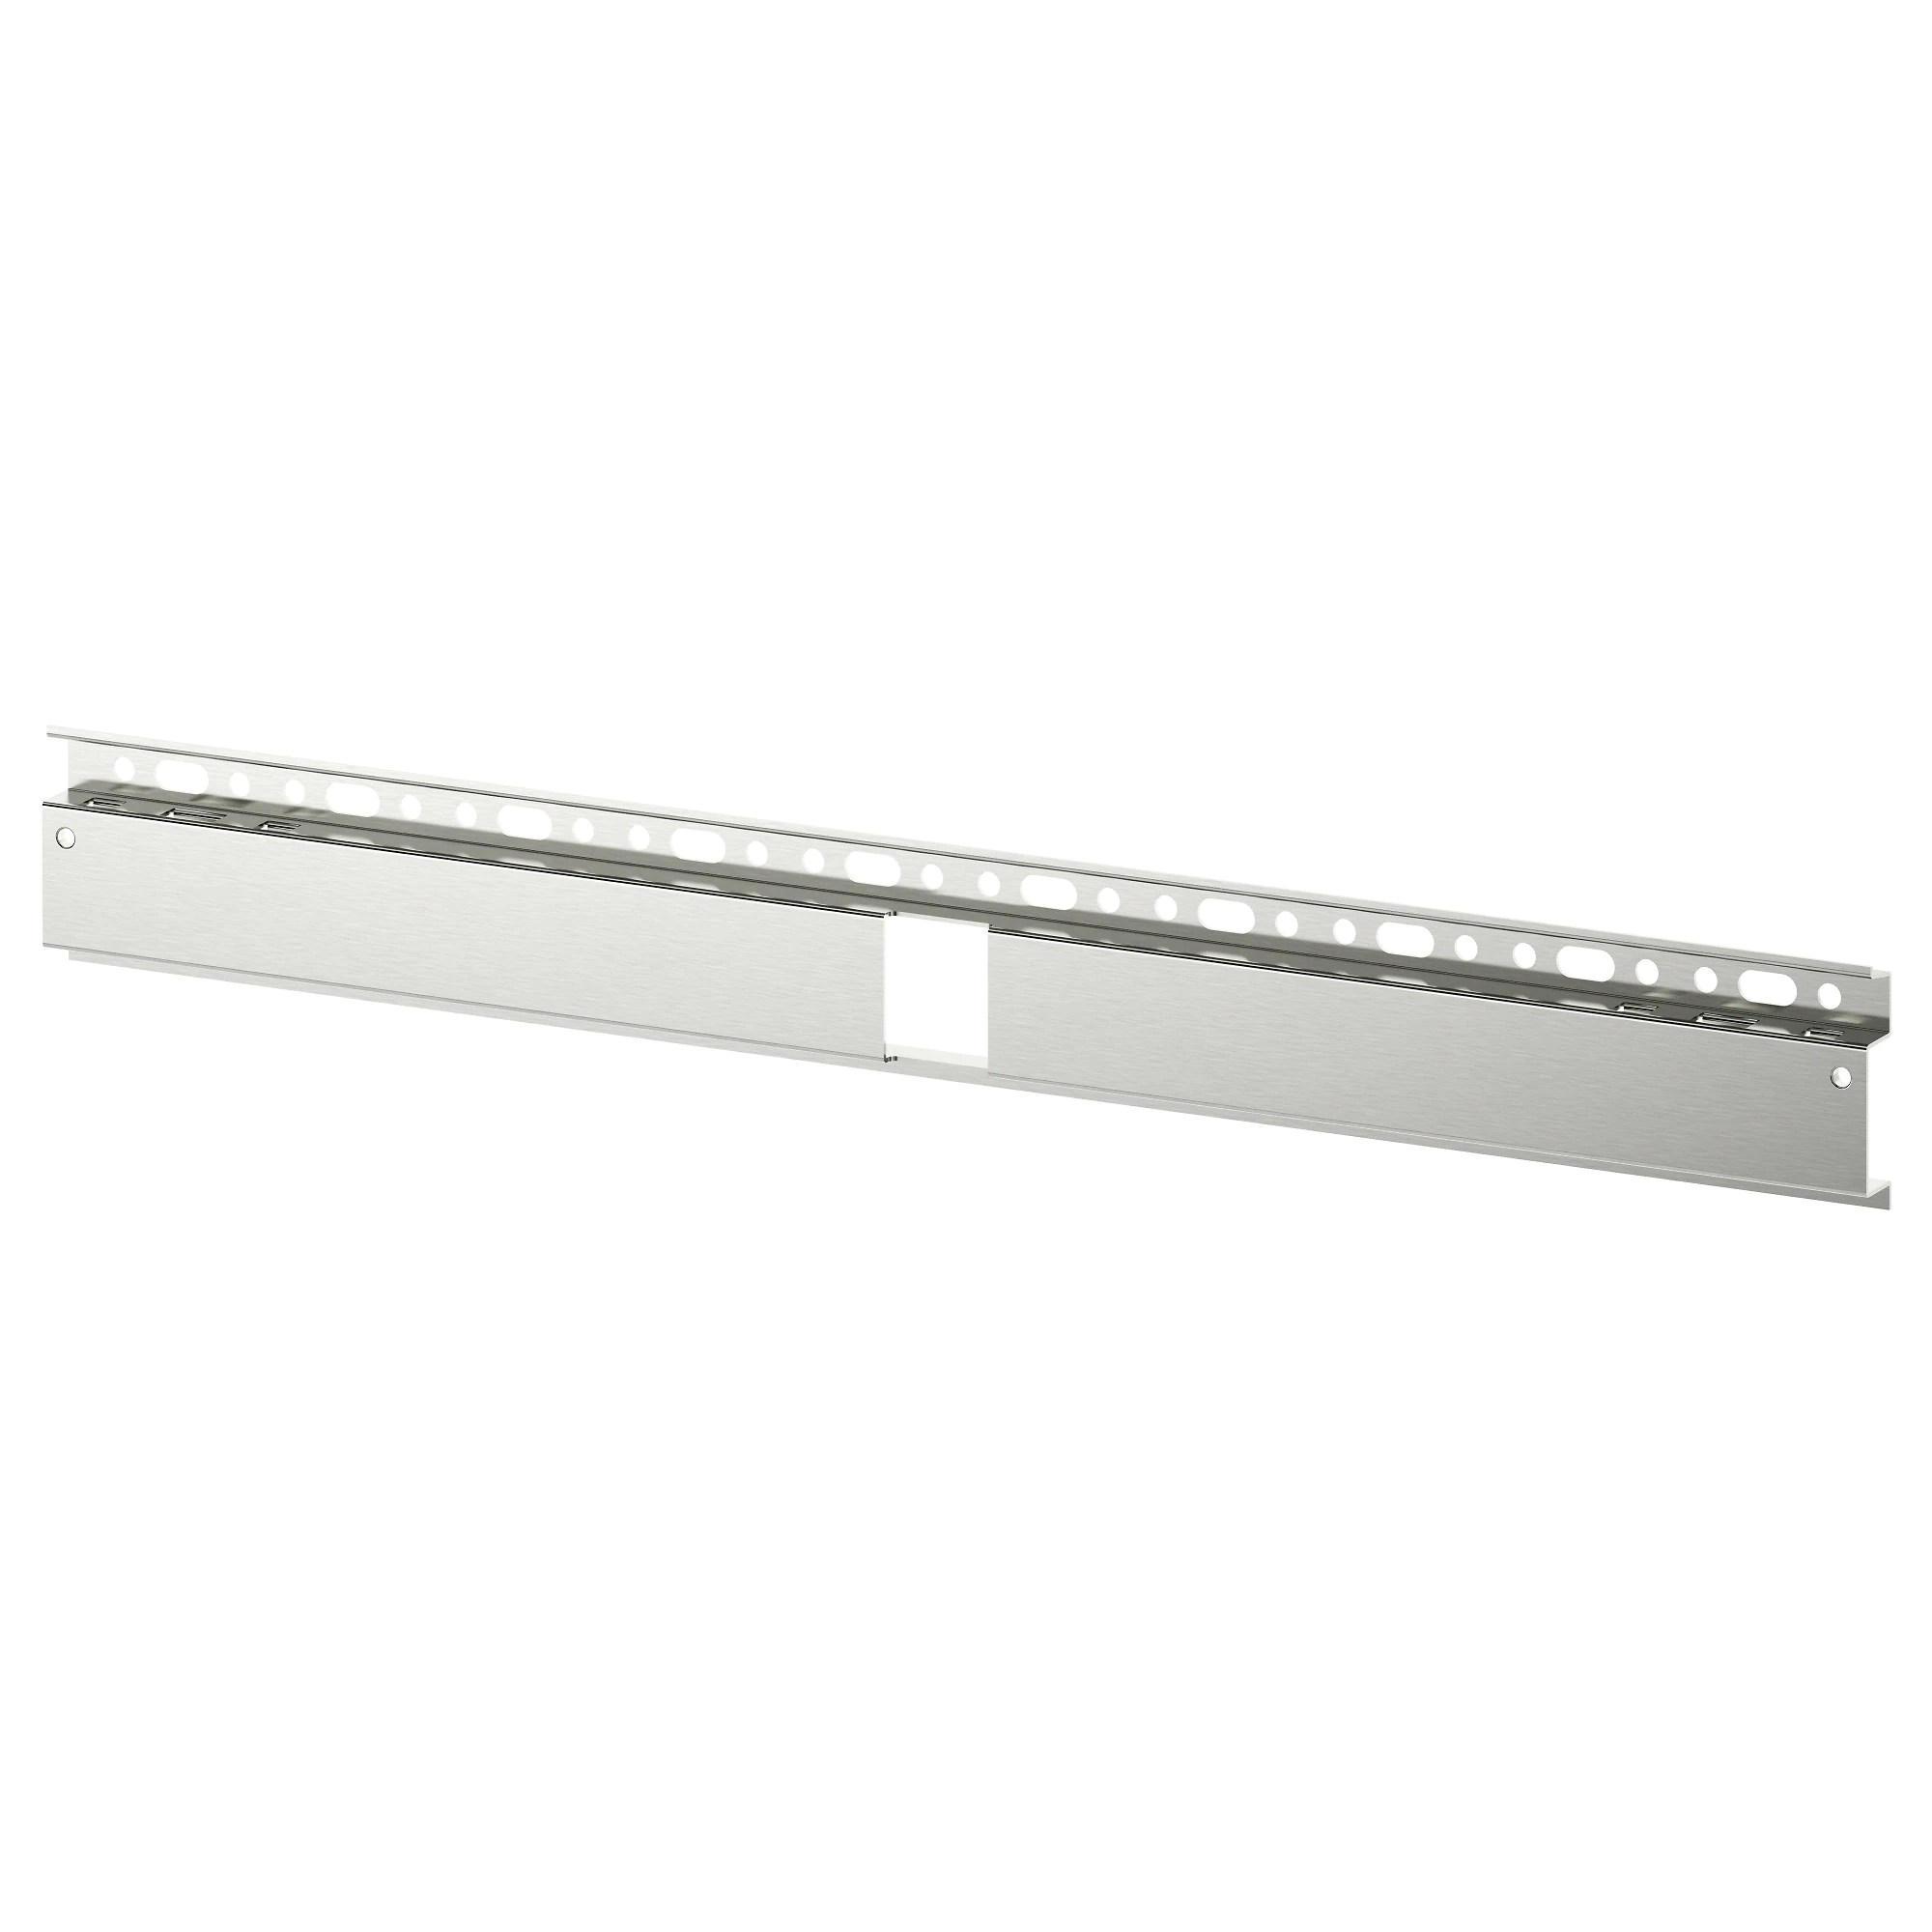 60 Cm Suspension Rail BestÅ Silver Colour